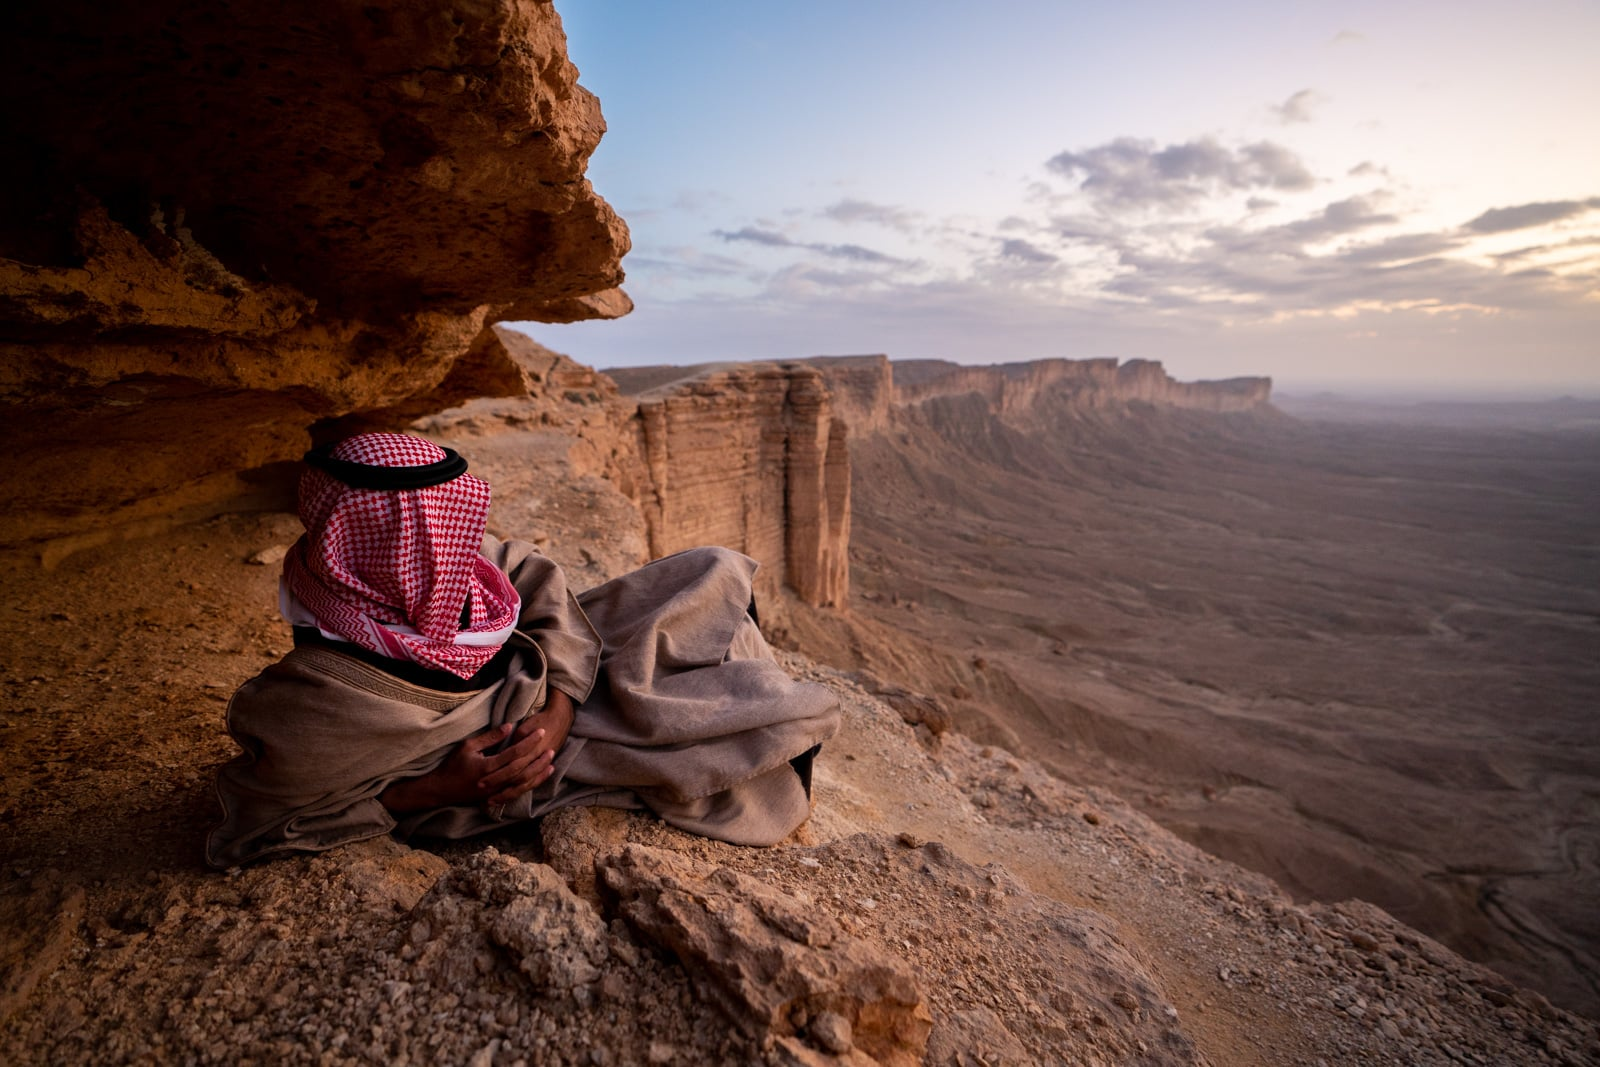 Couchsurfer watching the sunset at the Edge of the World cliffs in Saudi Arabia